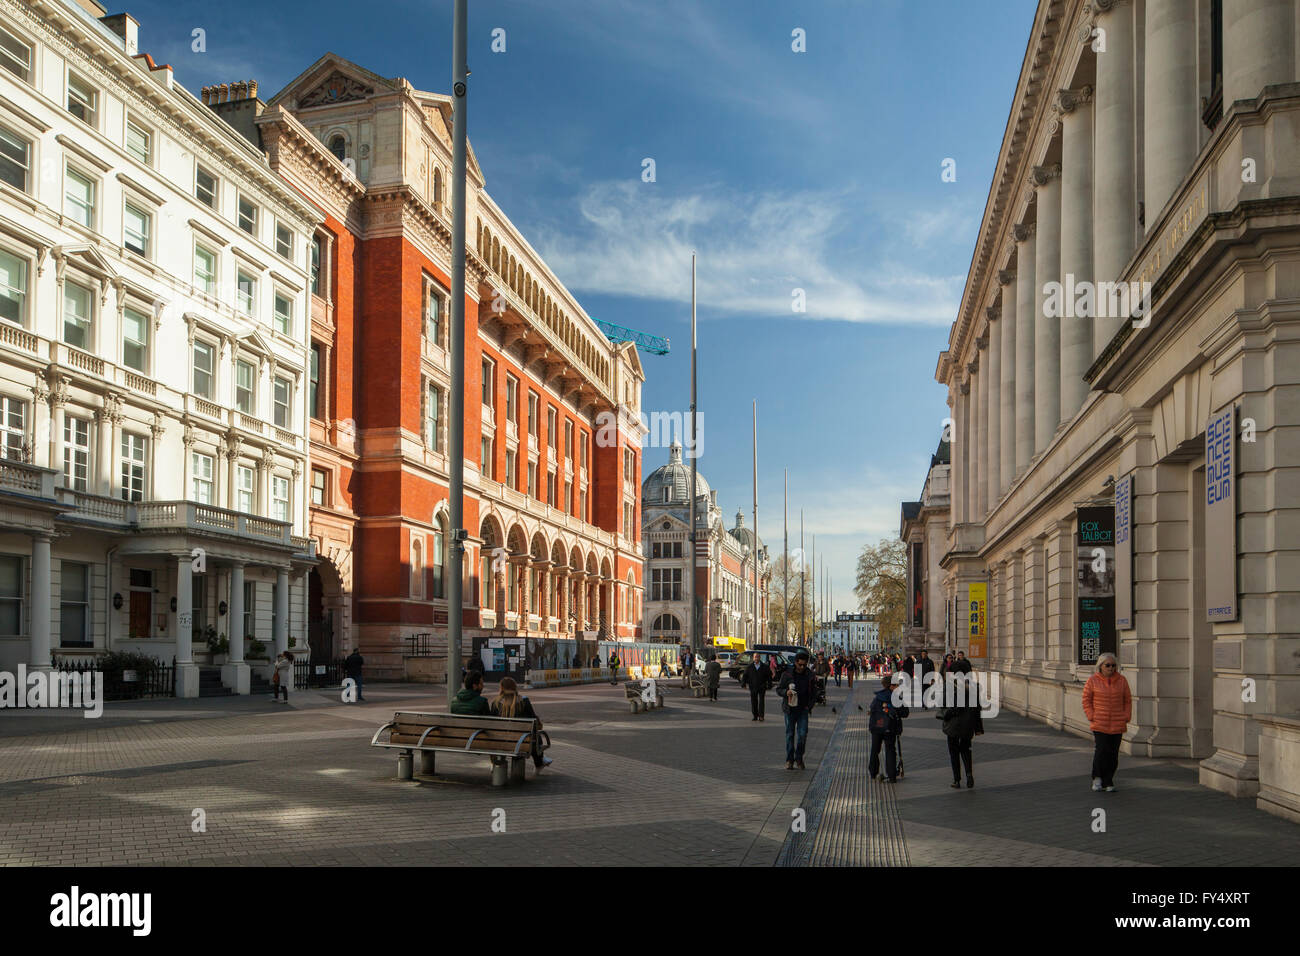 Exhibition Road in London, England. Looking towards Victoria and Albert Museum building. - Stock Image